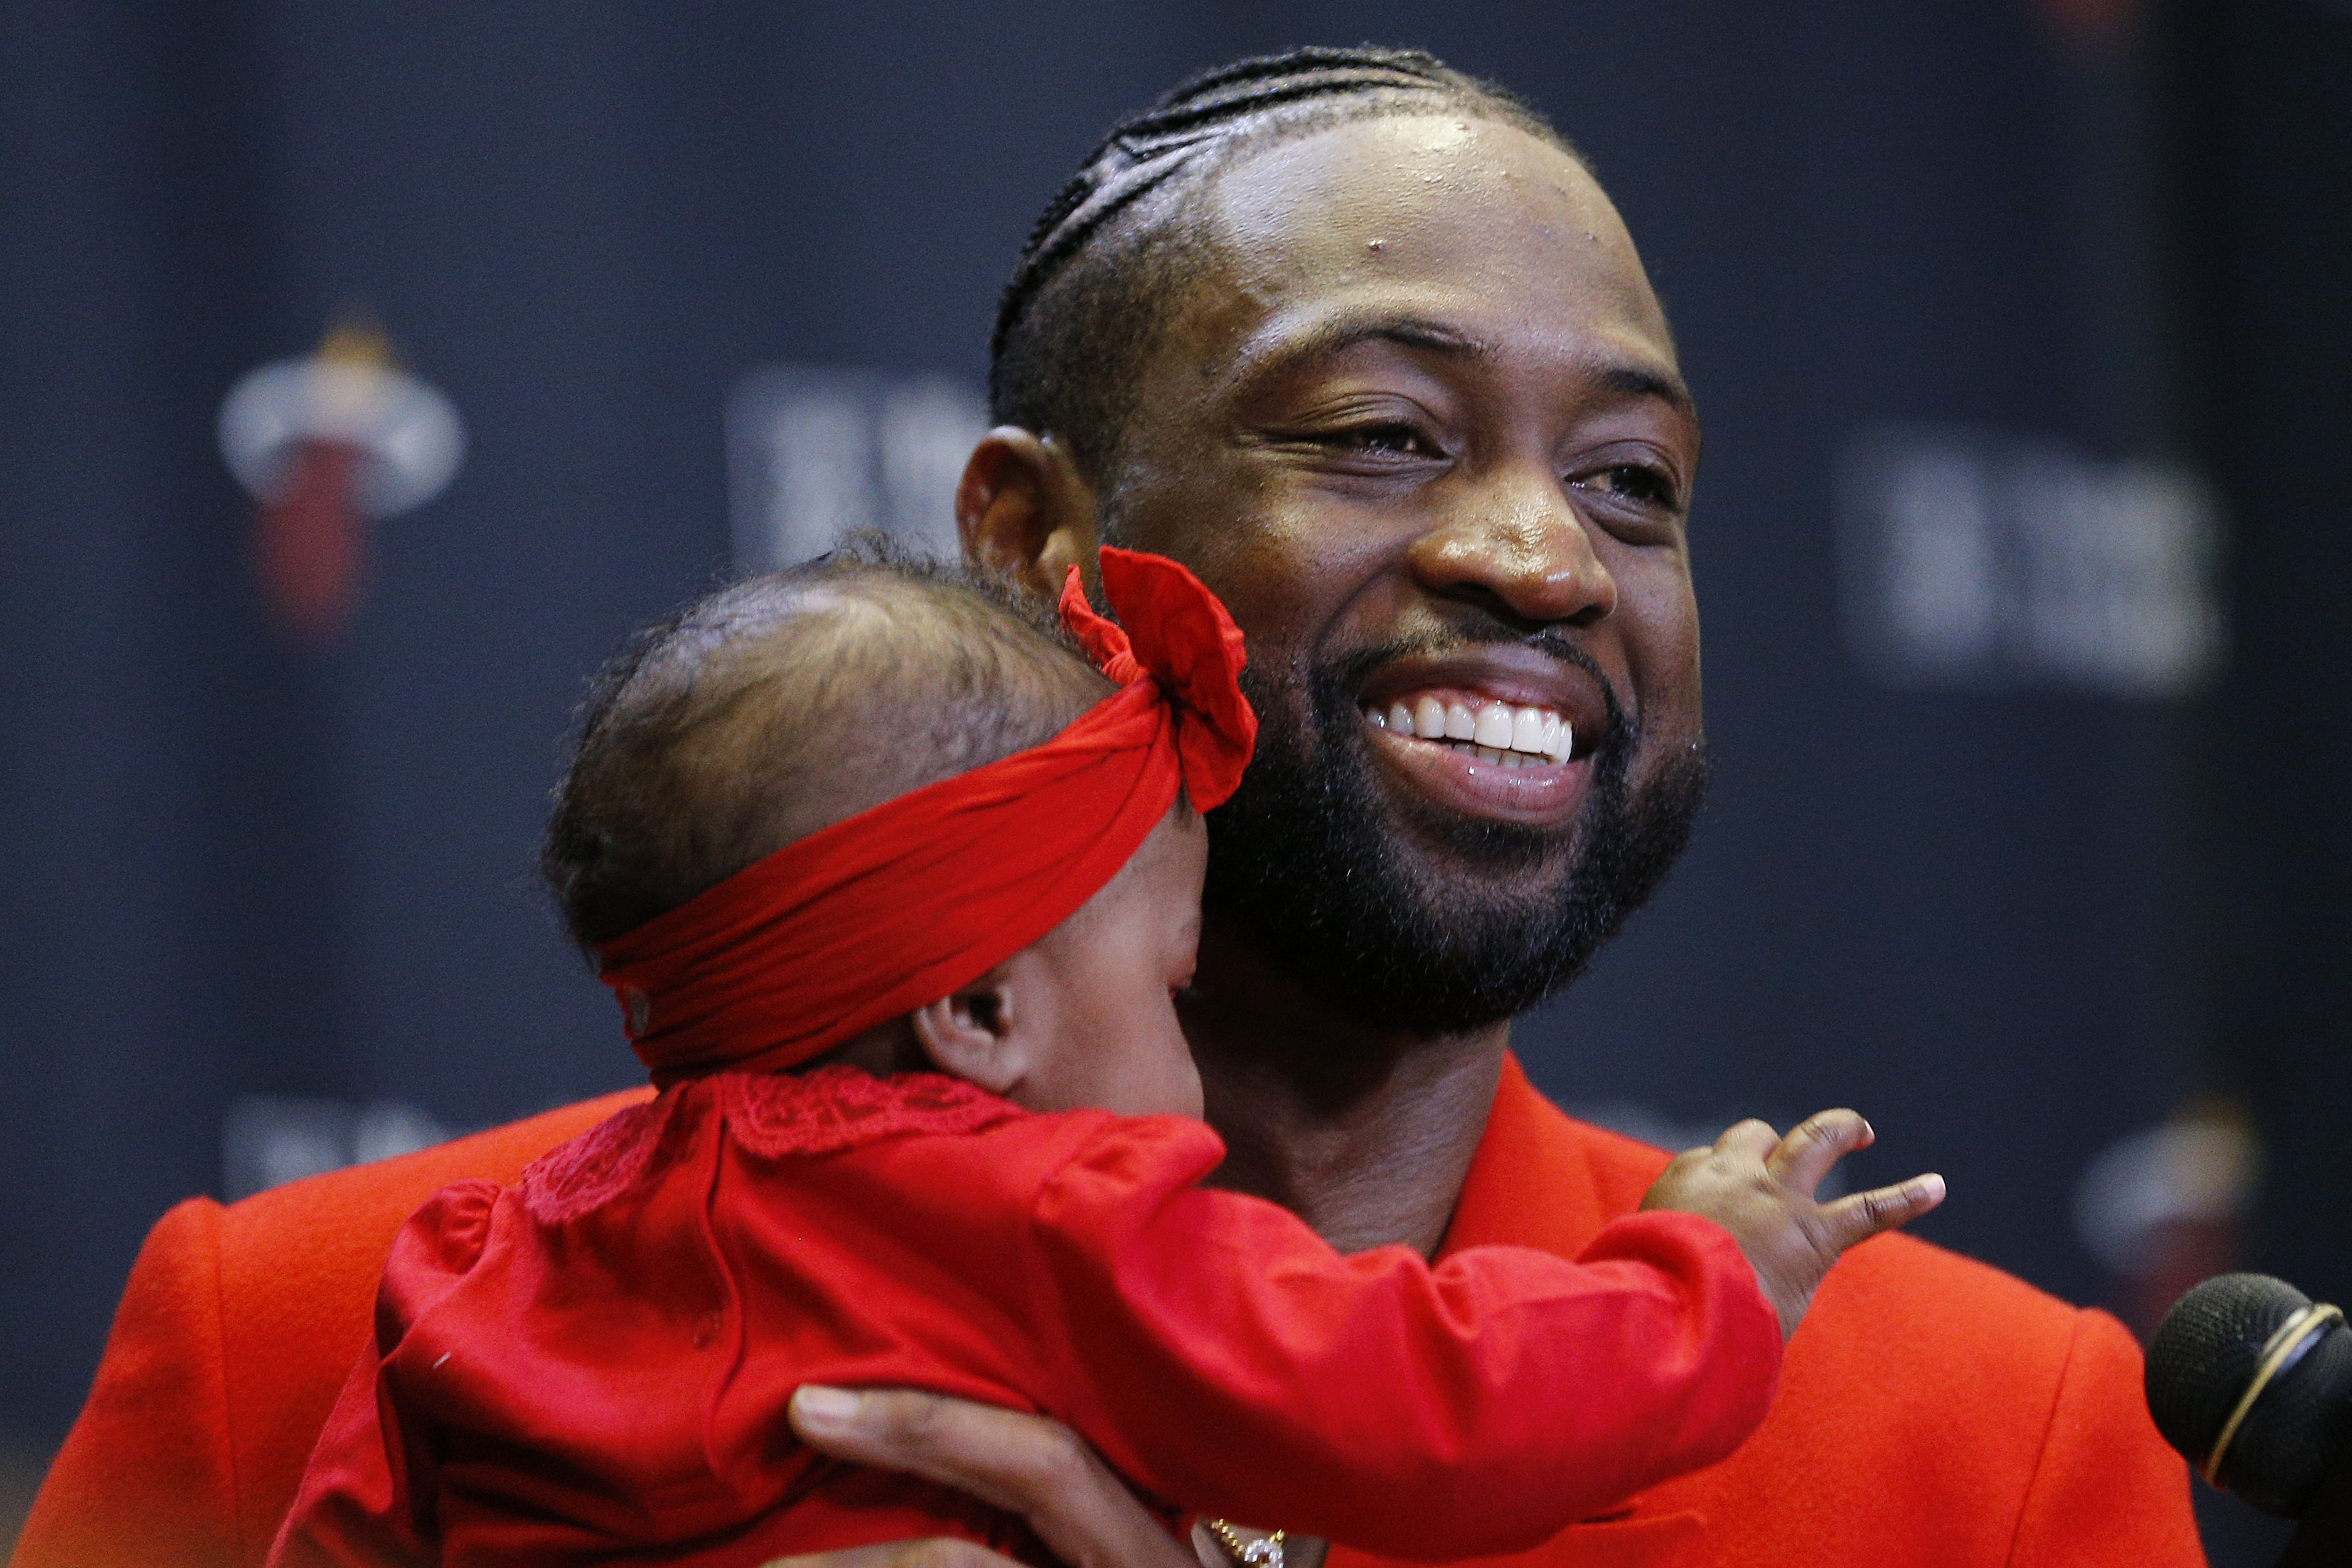 : Dwyane Wade #3 of the Miami Heat addresses the media after his final regular season home game at American Airlines Arena with his daughter, Kaavia James Union Wade, on April 09, 2019 in Miami, Florida. | Getty Images : pgotos